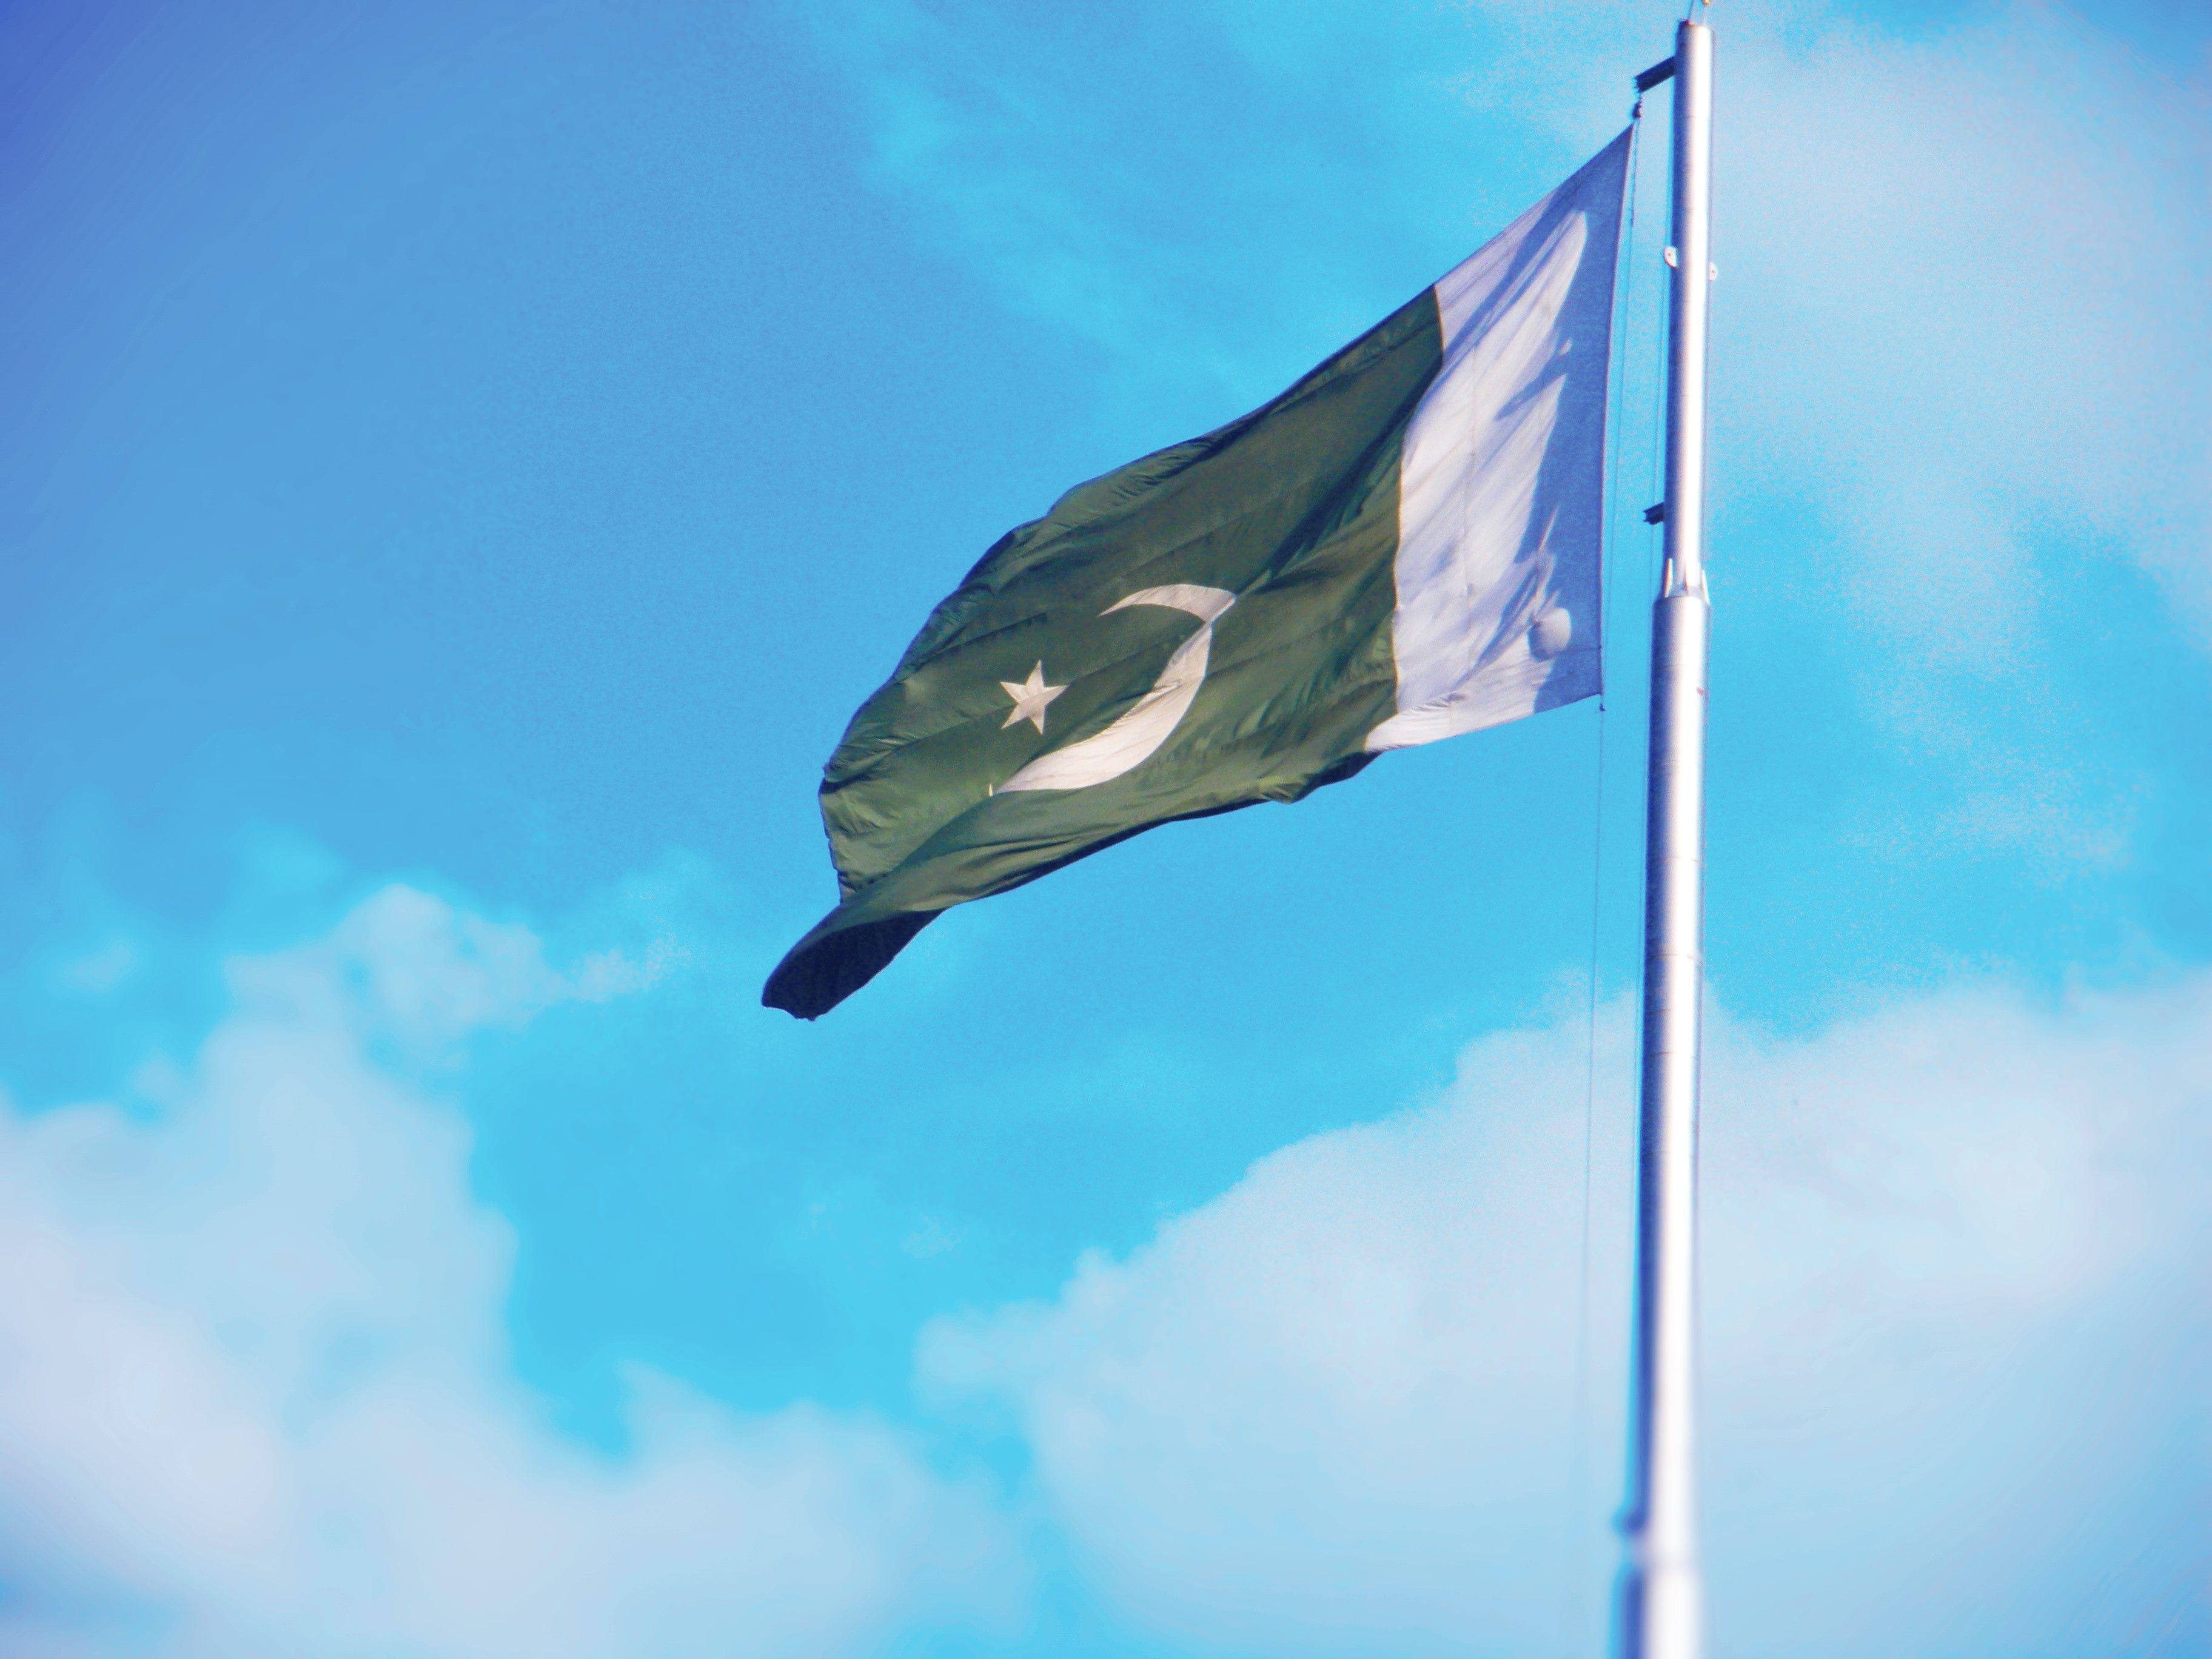 3648x2736 Islamabad○○○The Beautiful♥ images Pakistan Flag HD wallpaper and ...